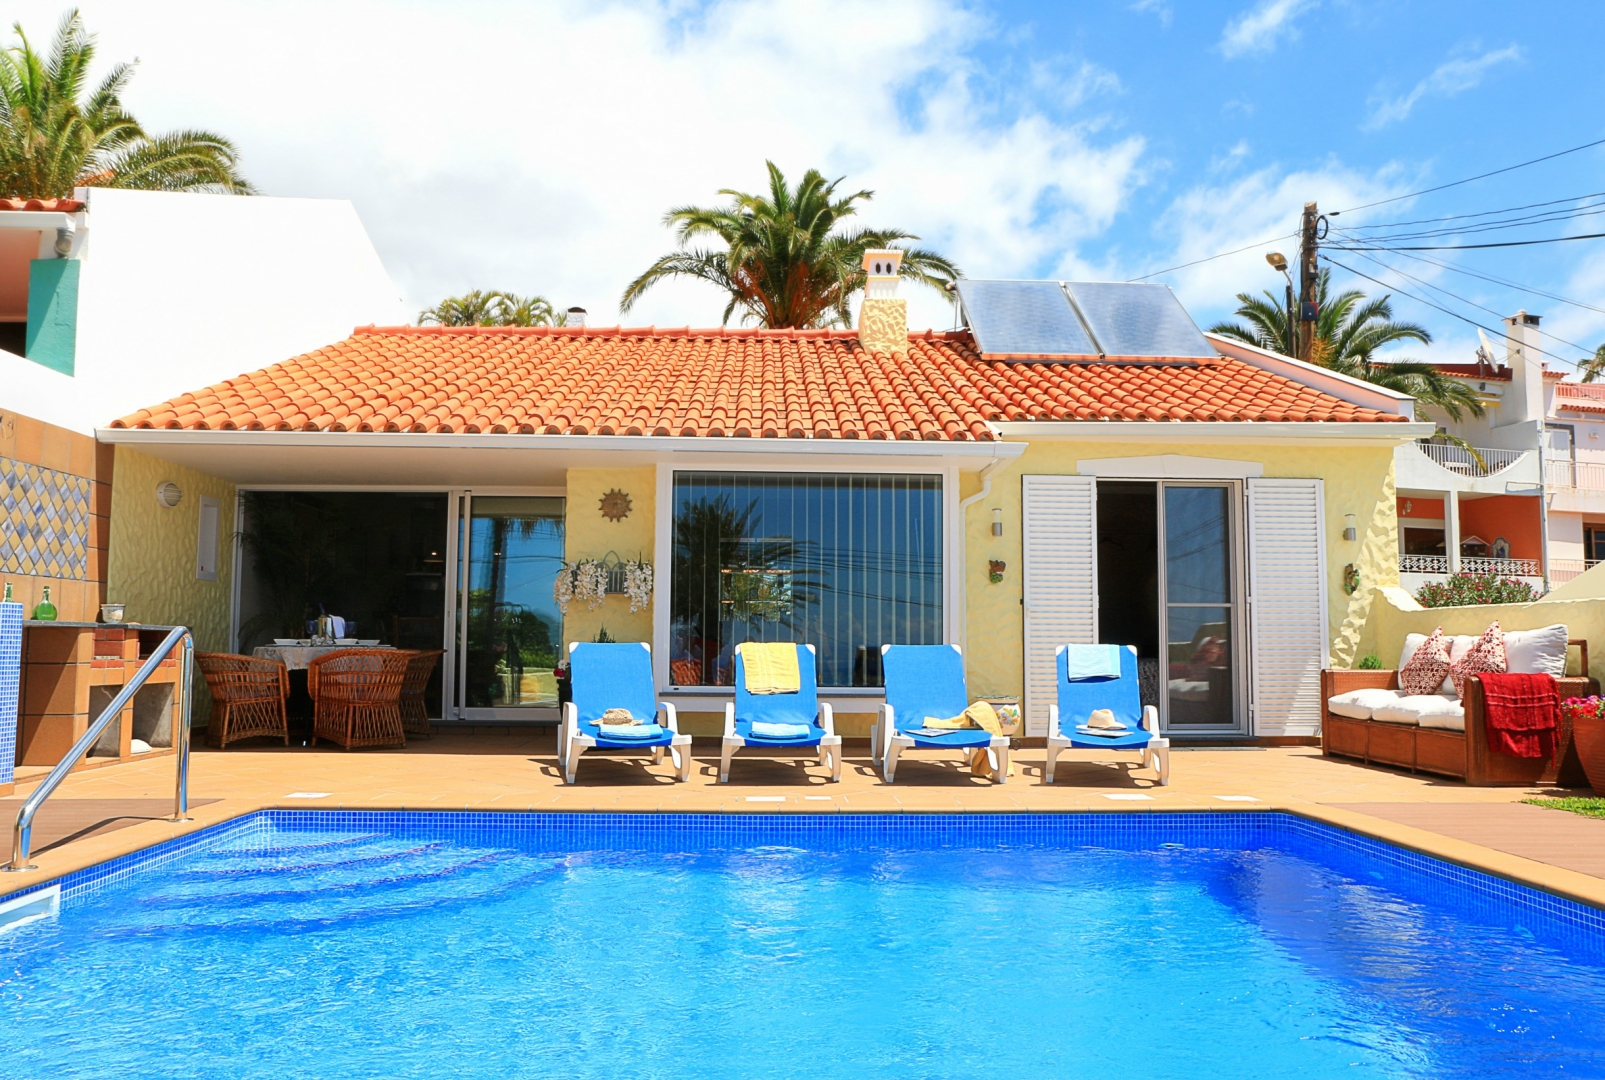 Sea View Vila - charming villa with swimming pool, sun terrace & lovely views 46553/AL